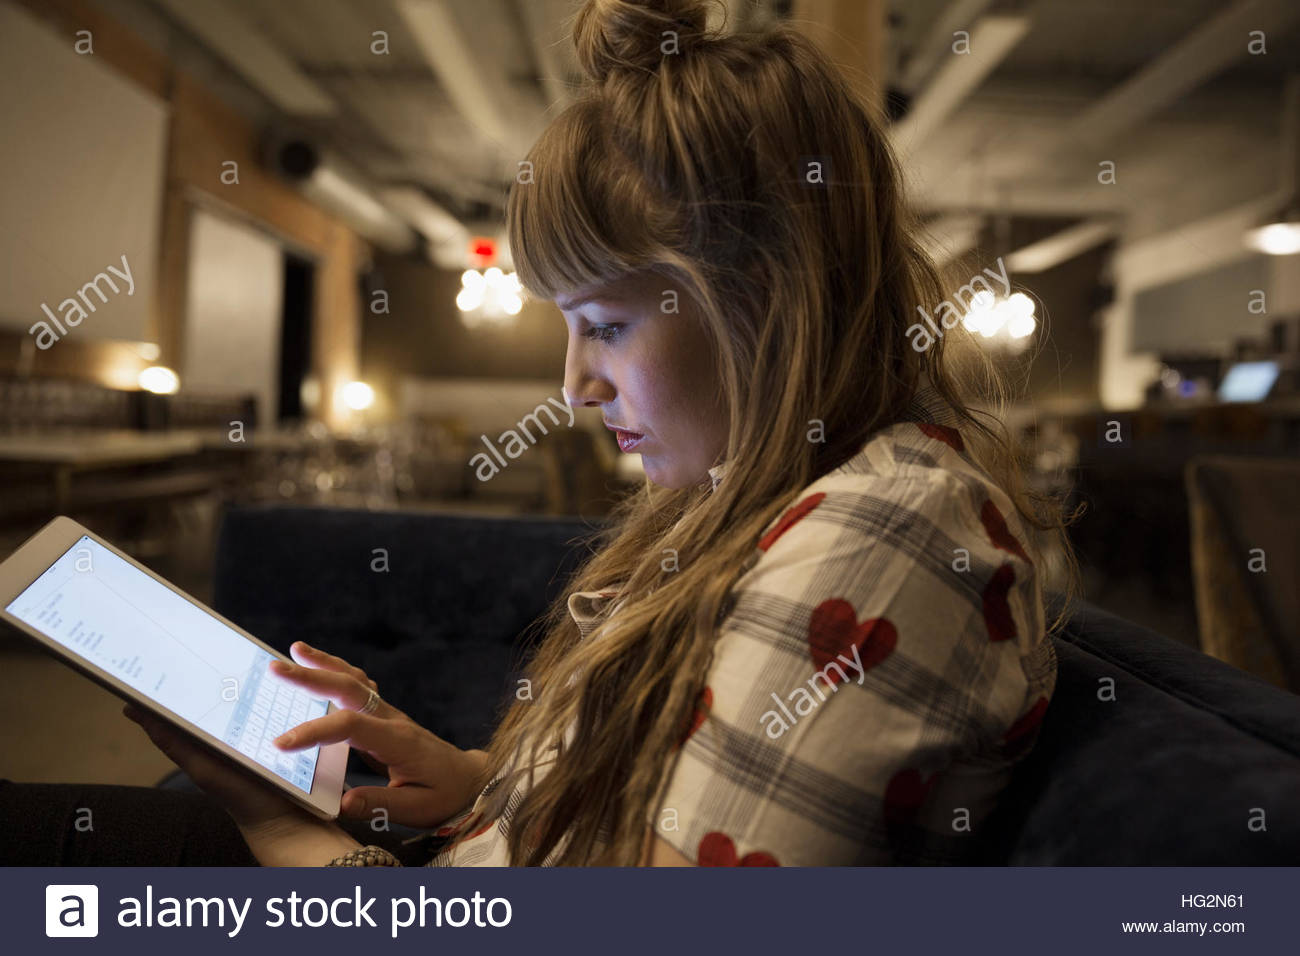 Focused businesswoman working late at digital tablet in office - Stock Image